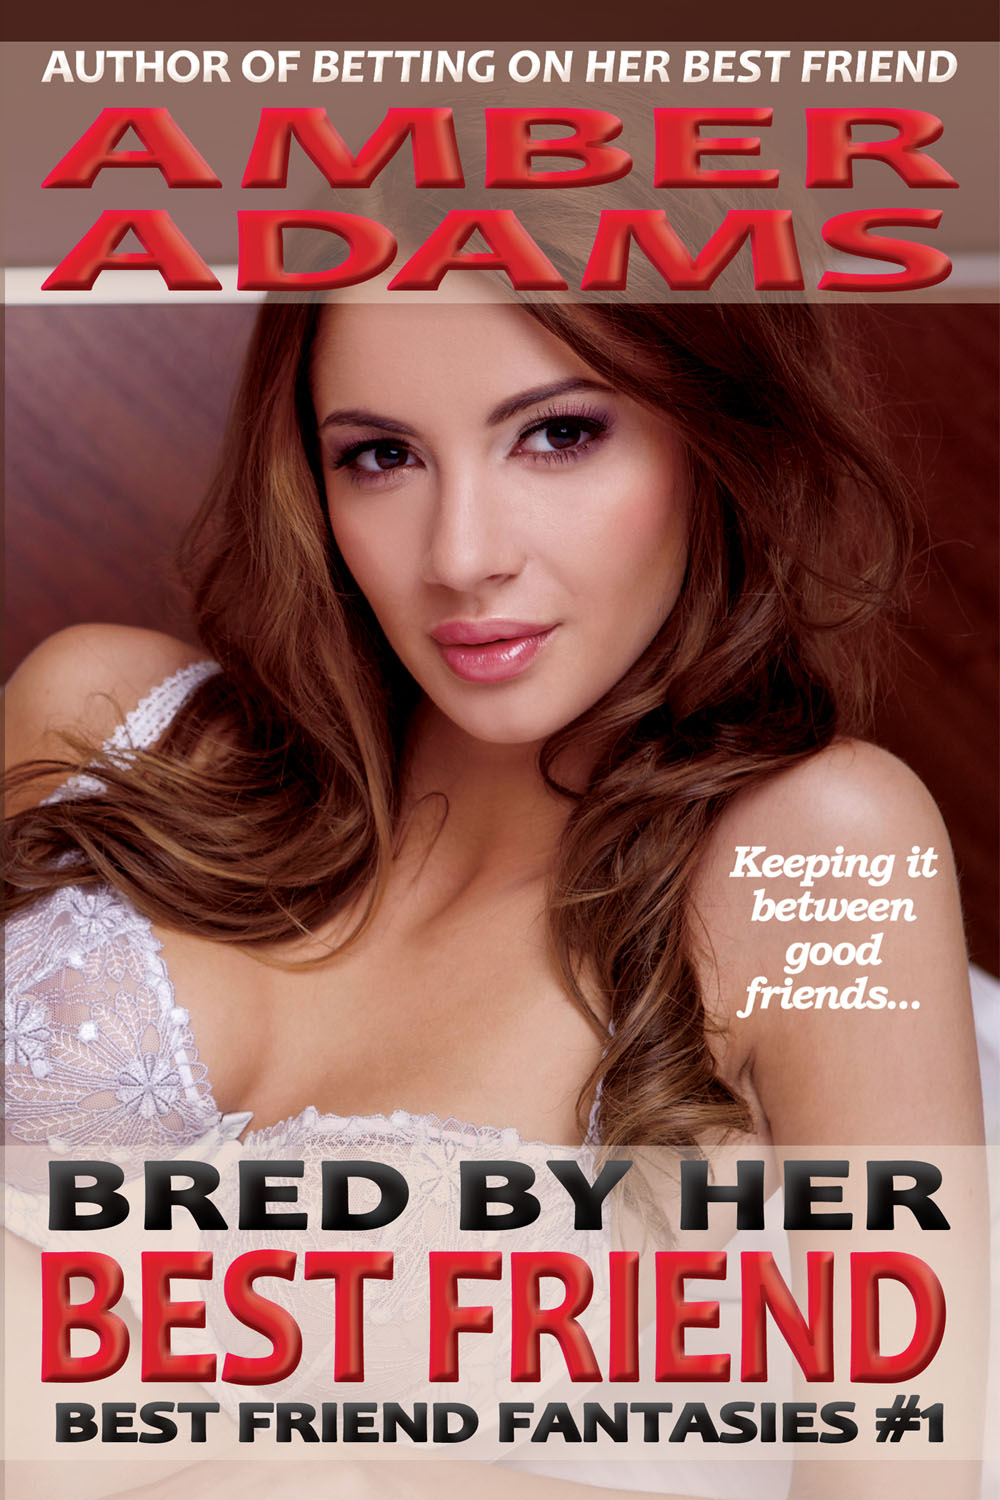 Amber Adams - Bred By Her Best Friend